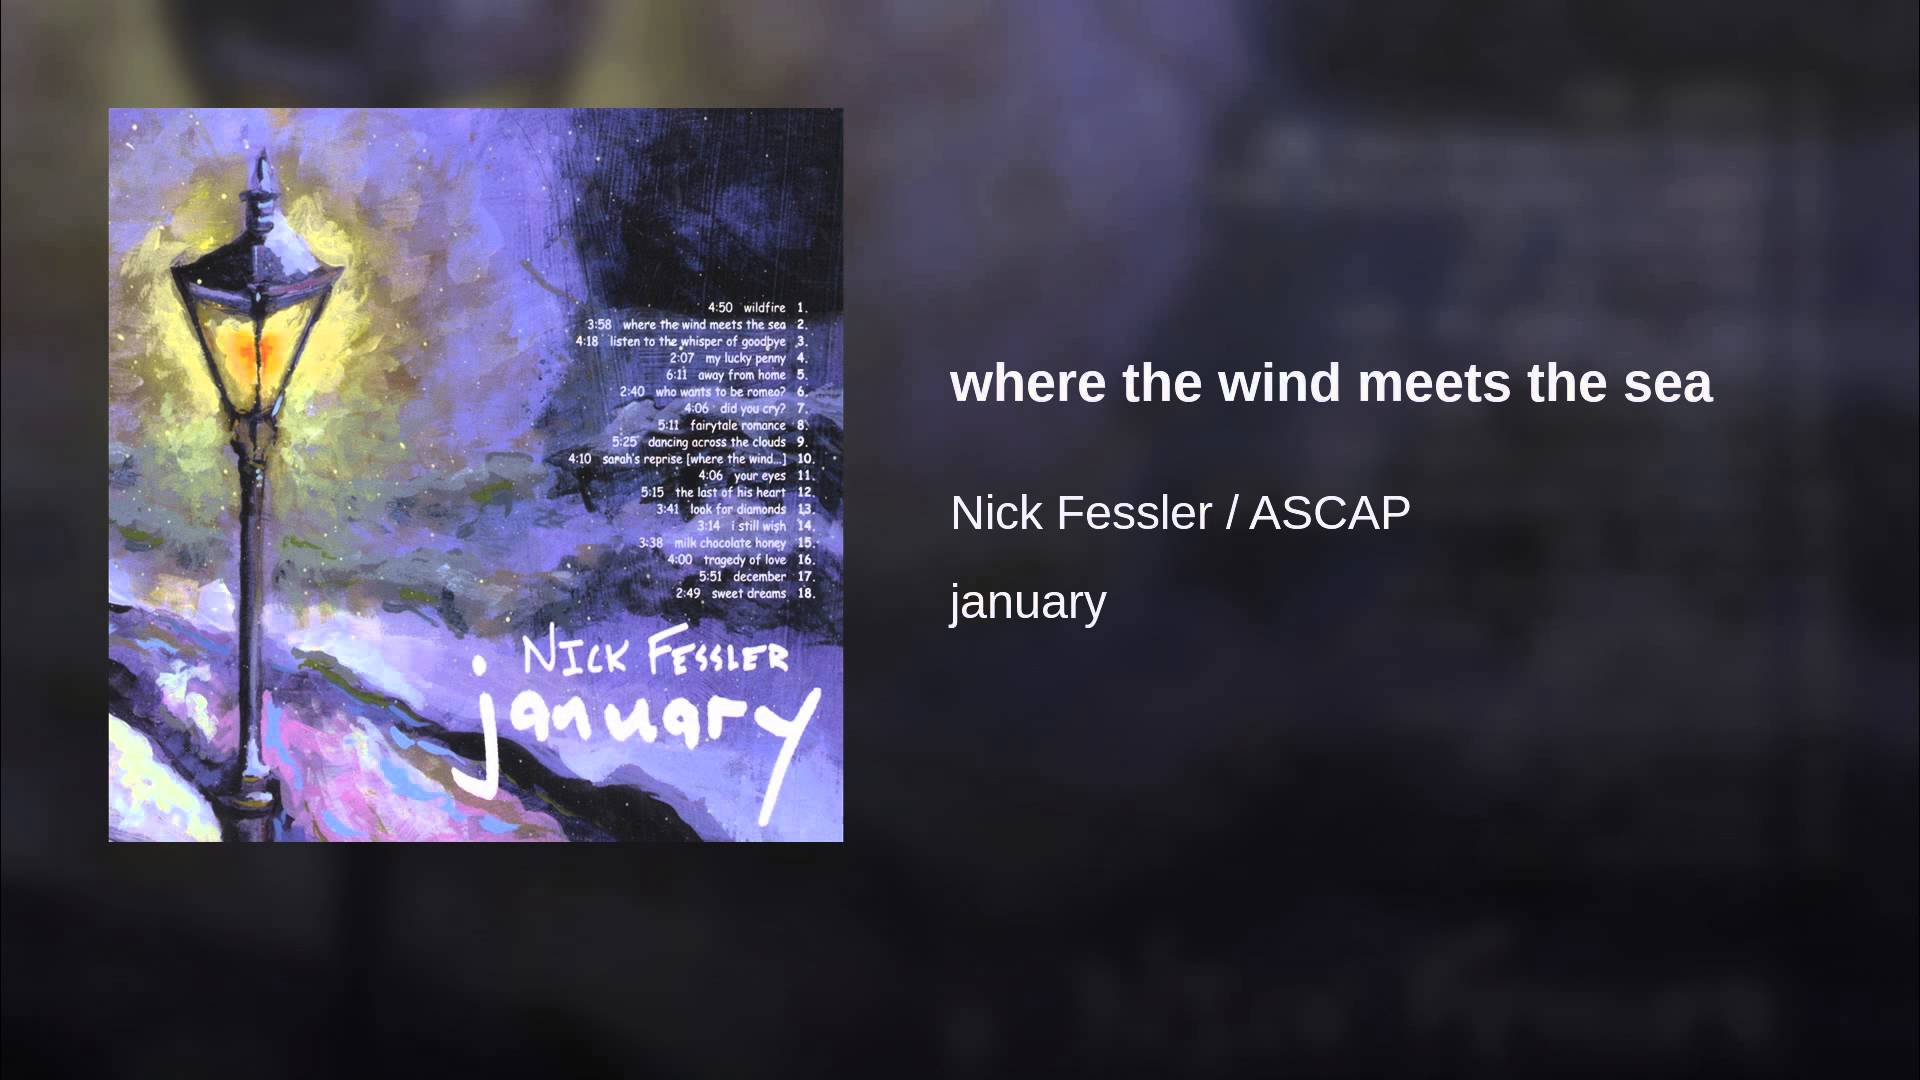 where the wind meets the sea - YouTube